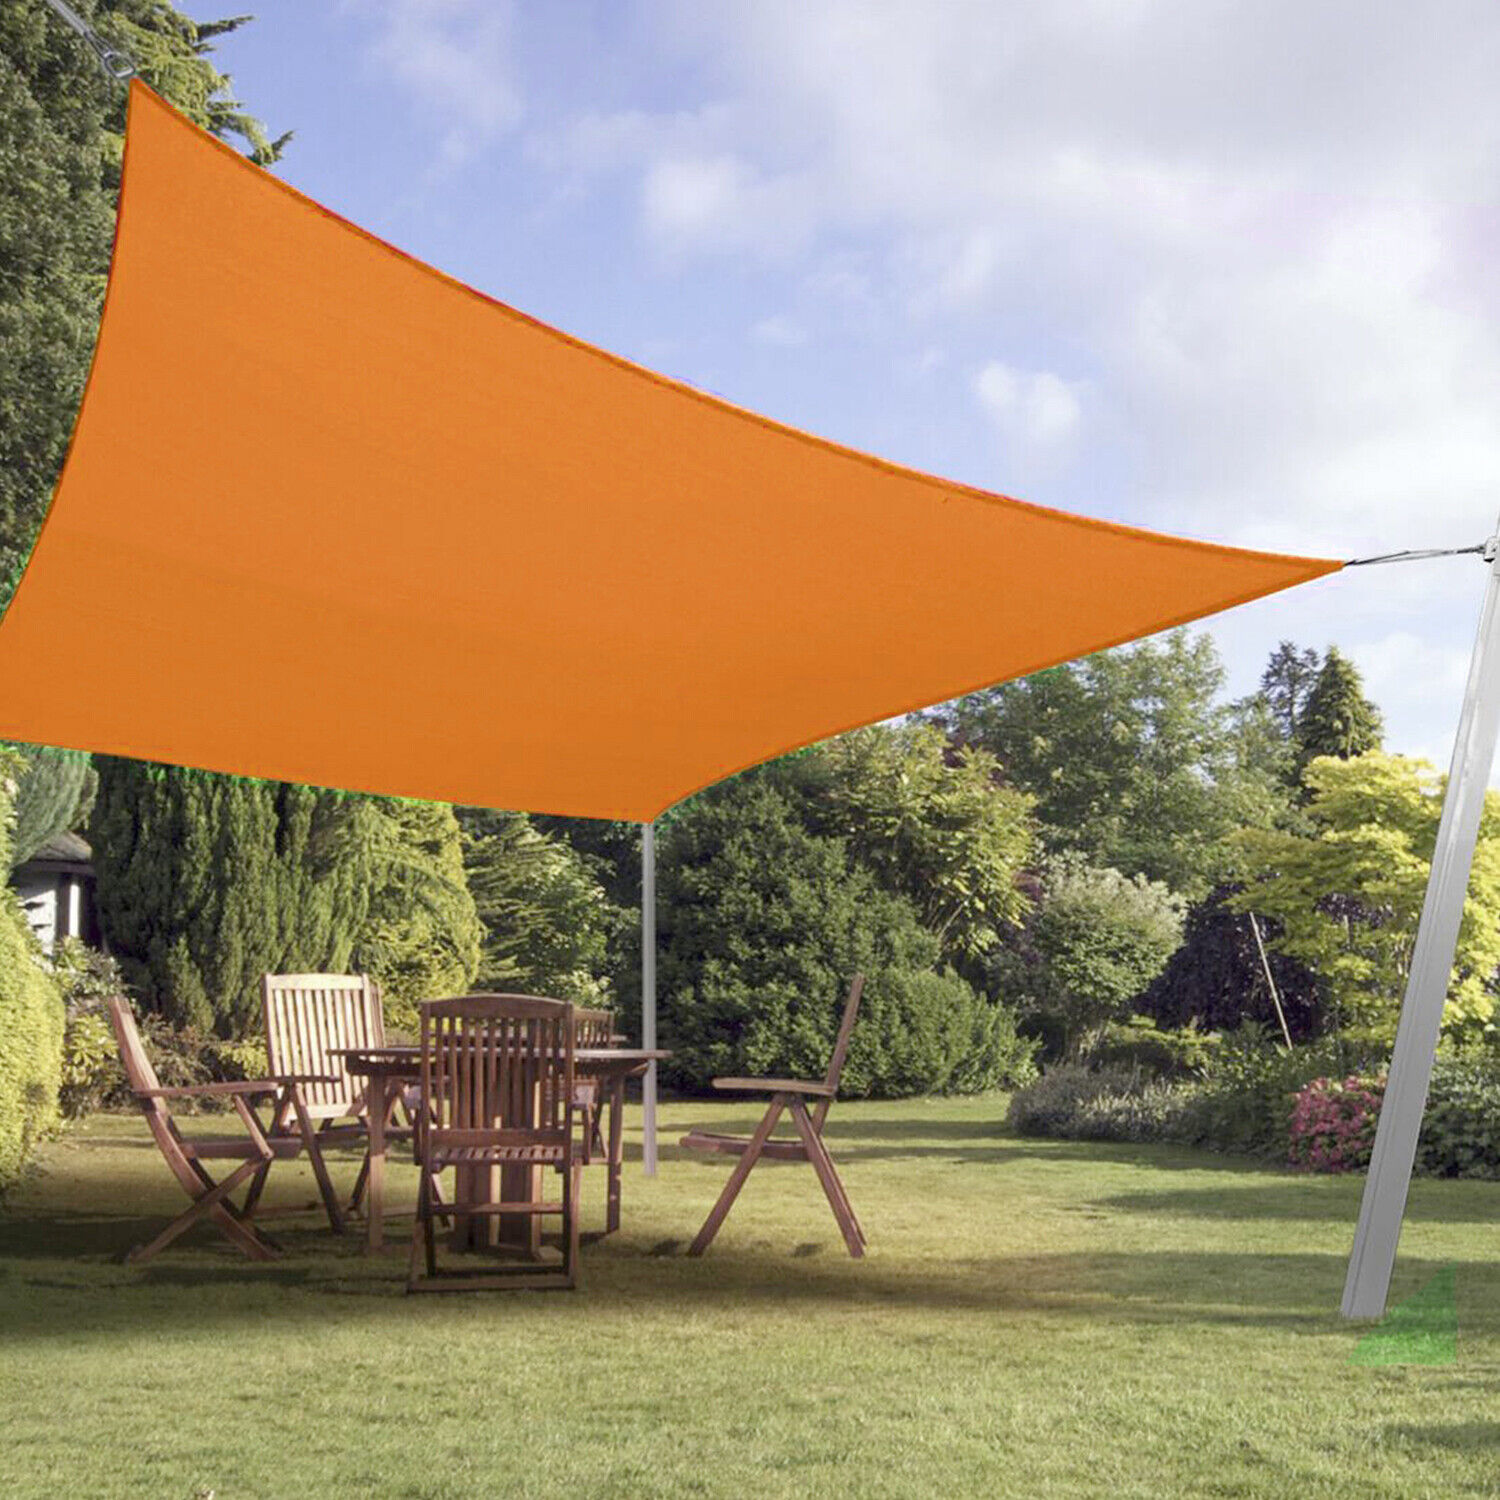 Standard Orange Curve Sun Shade Sail Home Garden Pool Patio Canopy Ebay